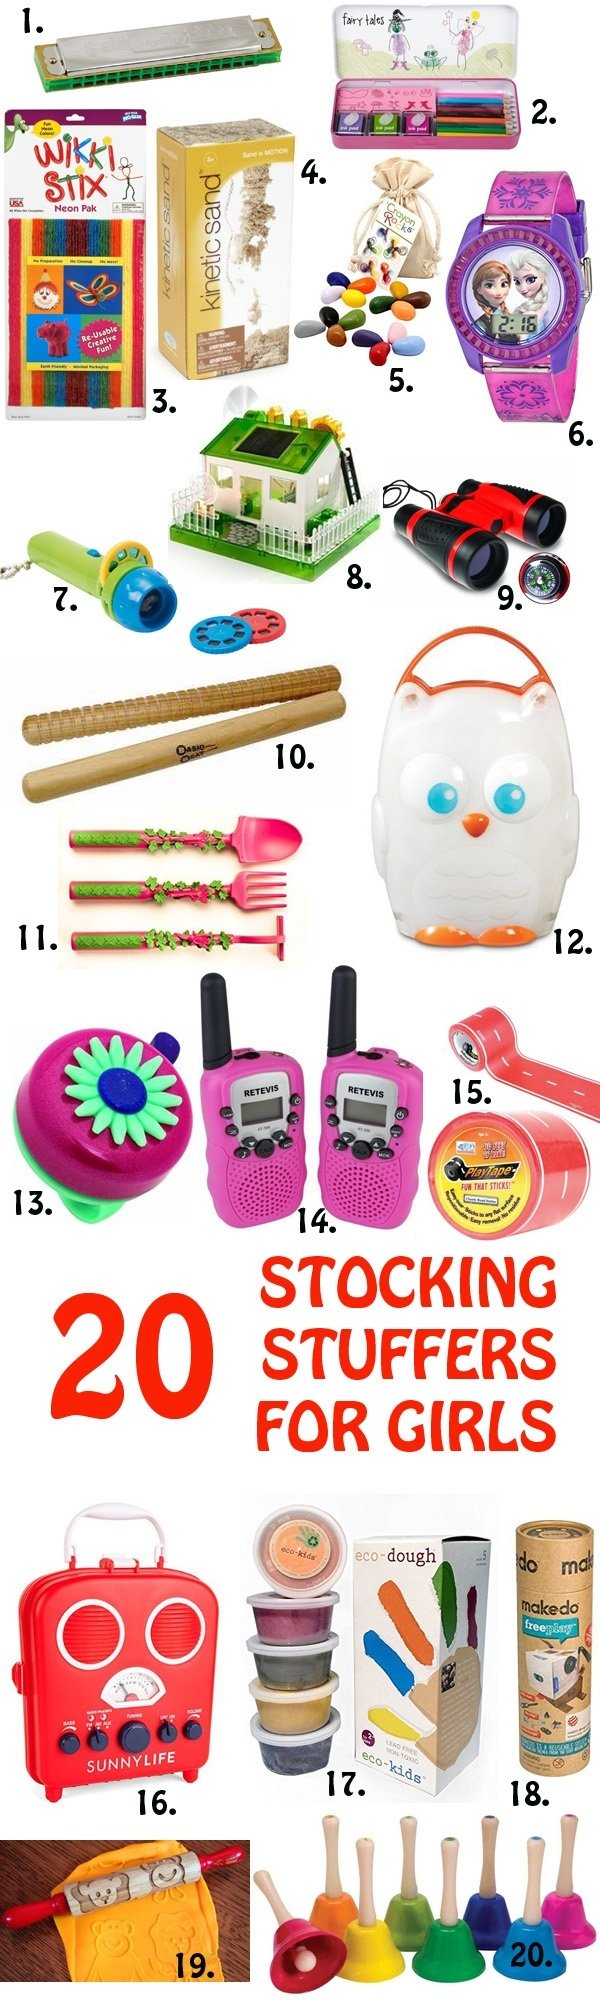 10 Nice Christmas Stocking Ideas For Kids 20 non candy stocking stuffers for boys and girls non toy gifts 2020